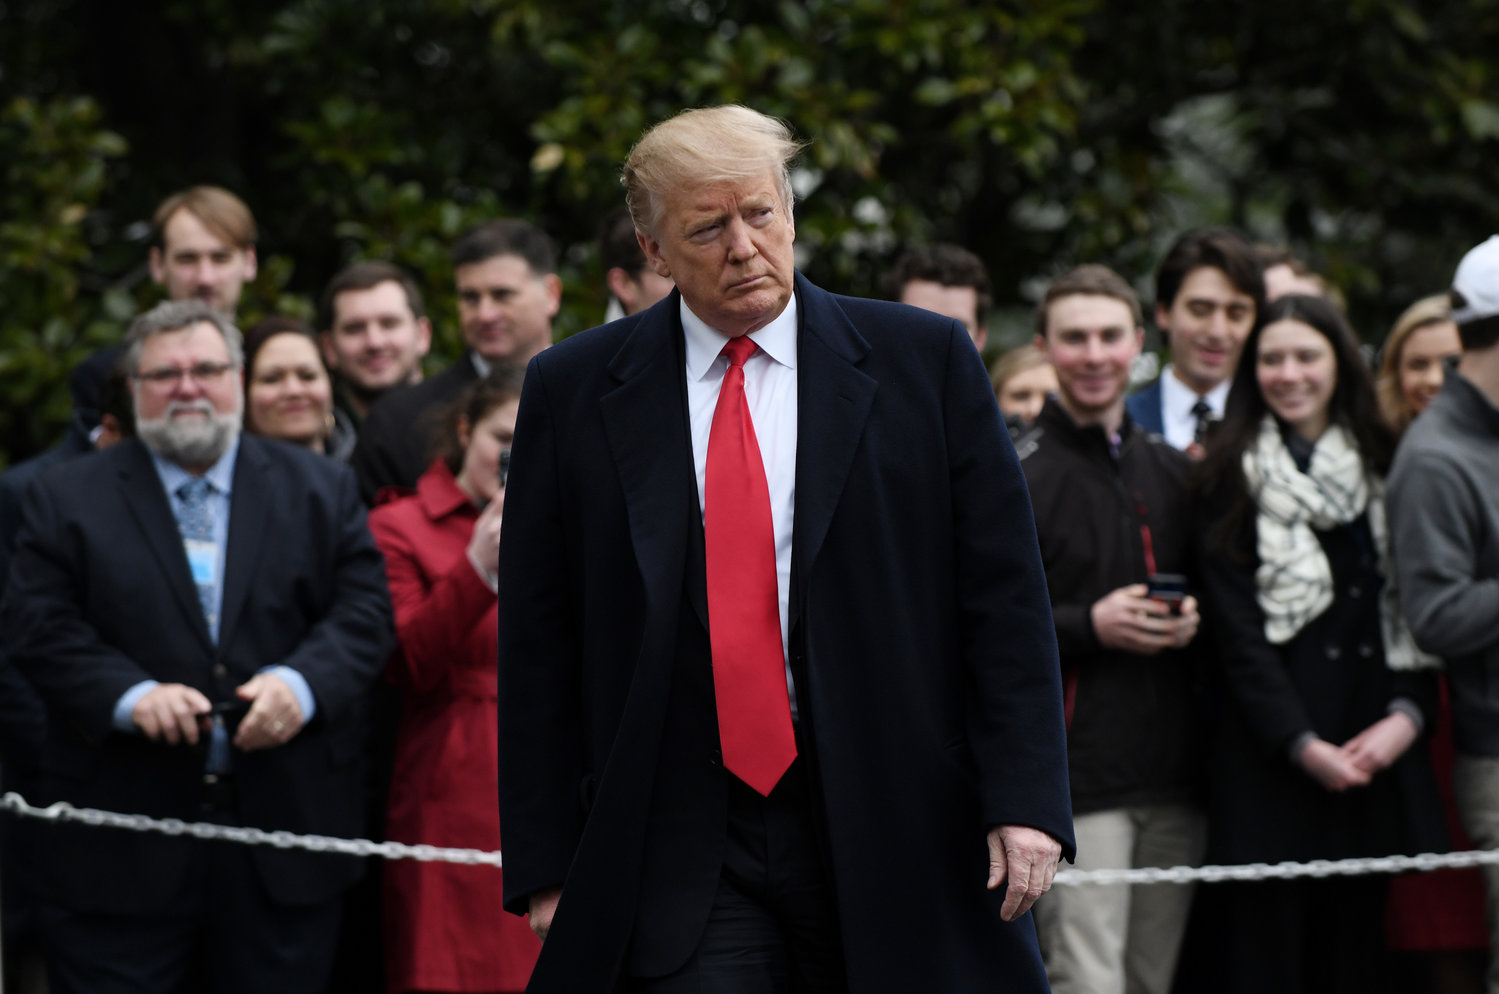 U.S. President Donald Trump departs the White House en route to Florida, on Friday, March 22, 2019 in Washington, D.C.